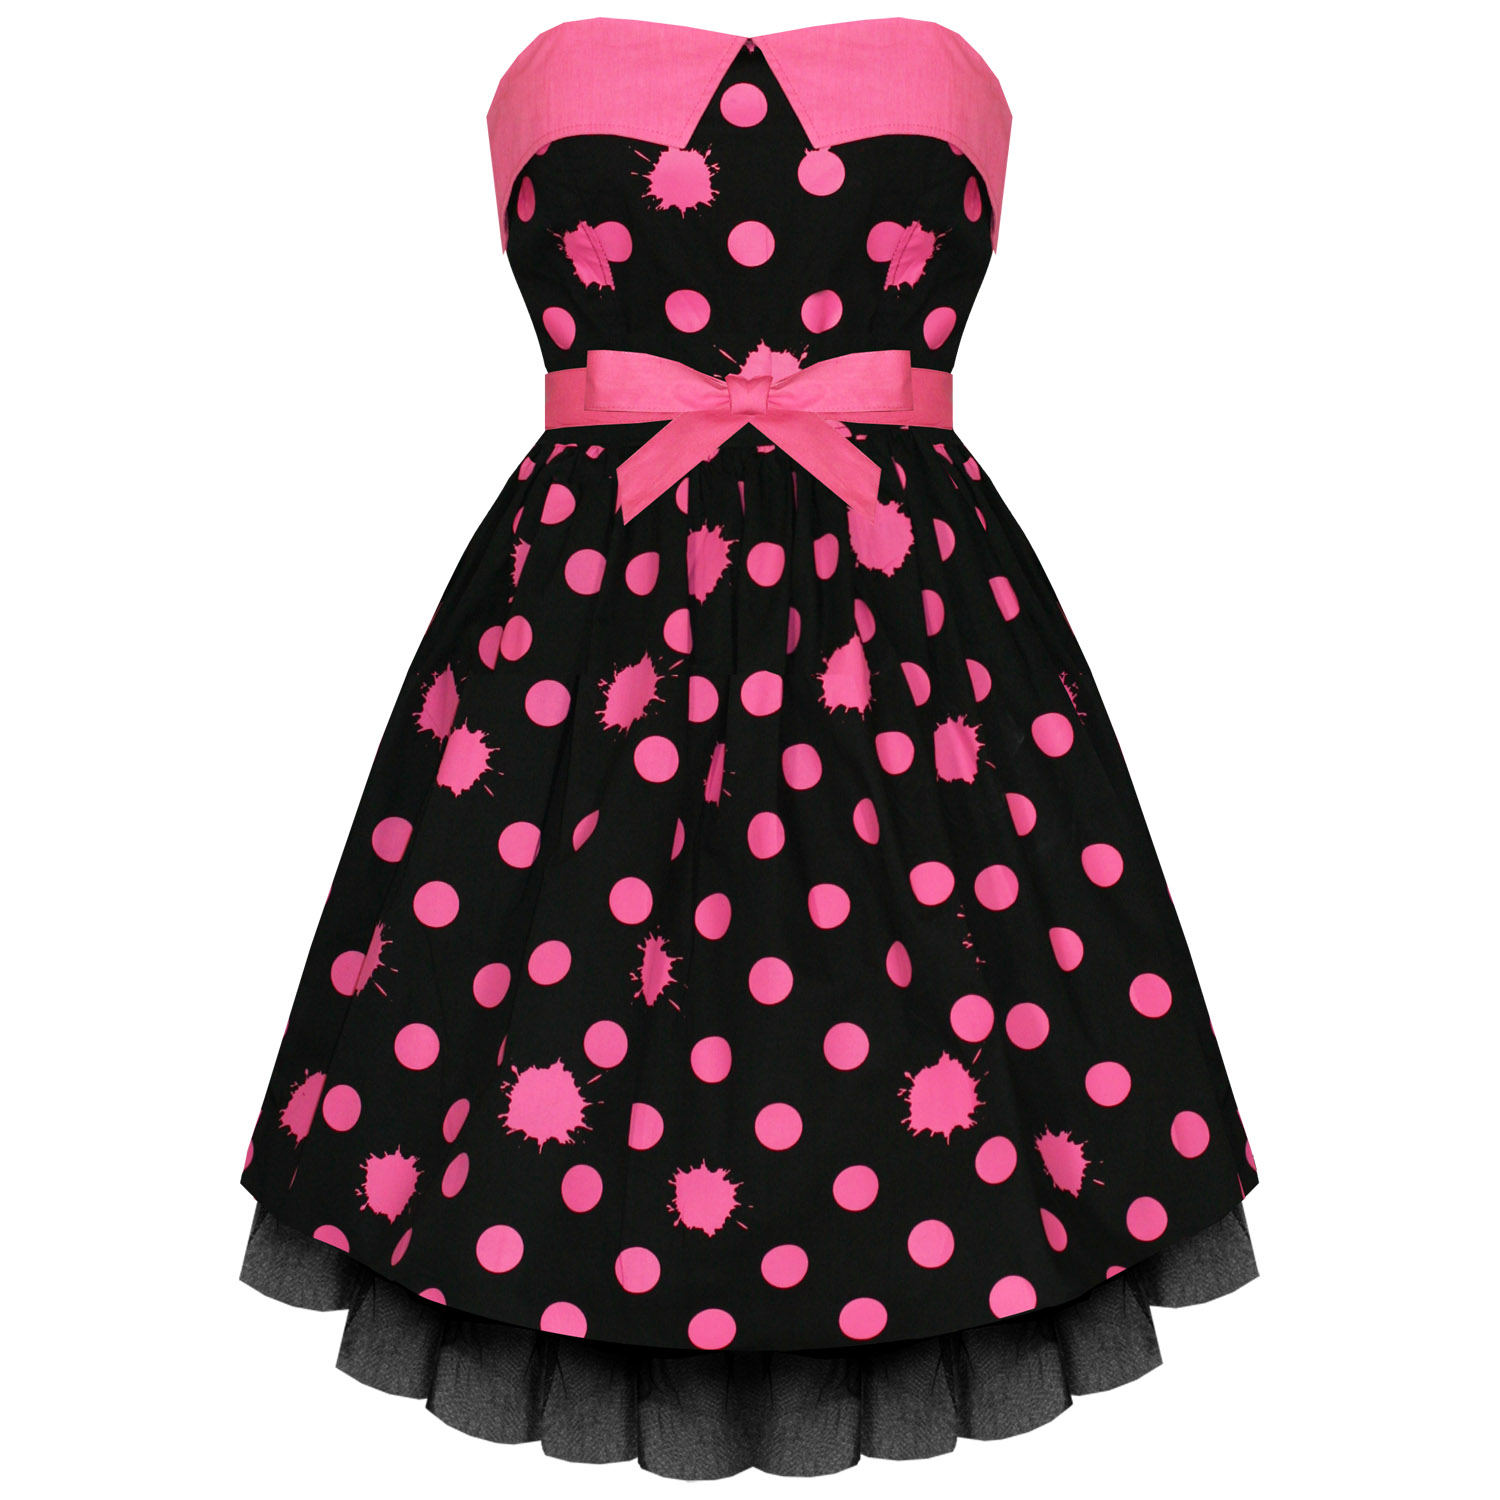 32, results for polka dot dress Save polka dot dress to get e-mail alerts and updates on your eBay Feed. Unfollow polka dot dress to stop getting updates on your eBay feed.